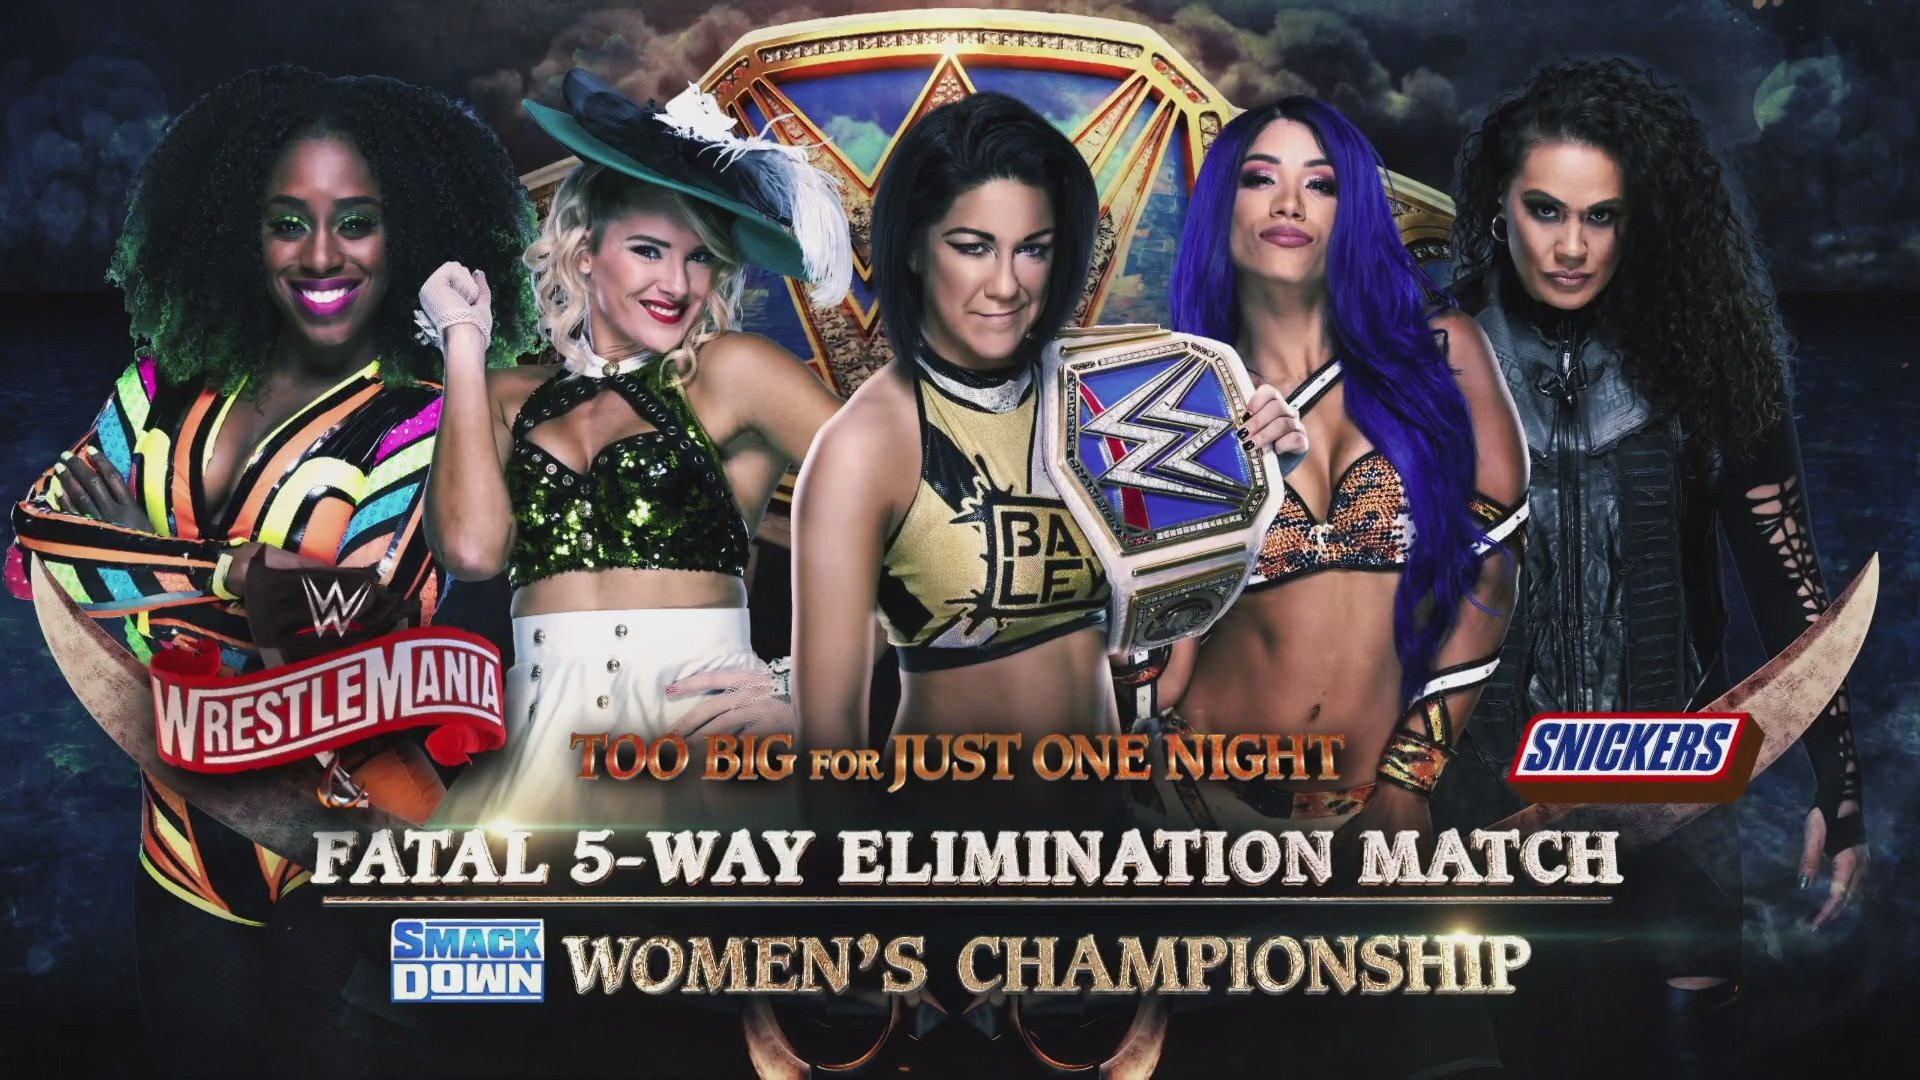 Will WWE Crown A New Women's Champion At Wrestlemania 36? 1